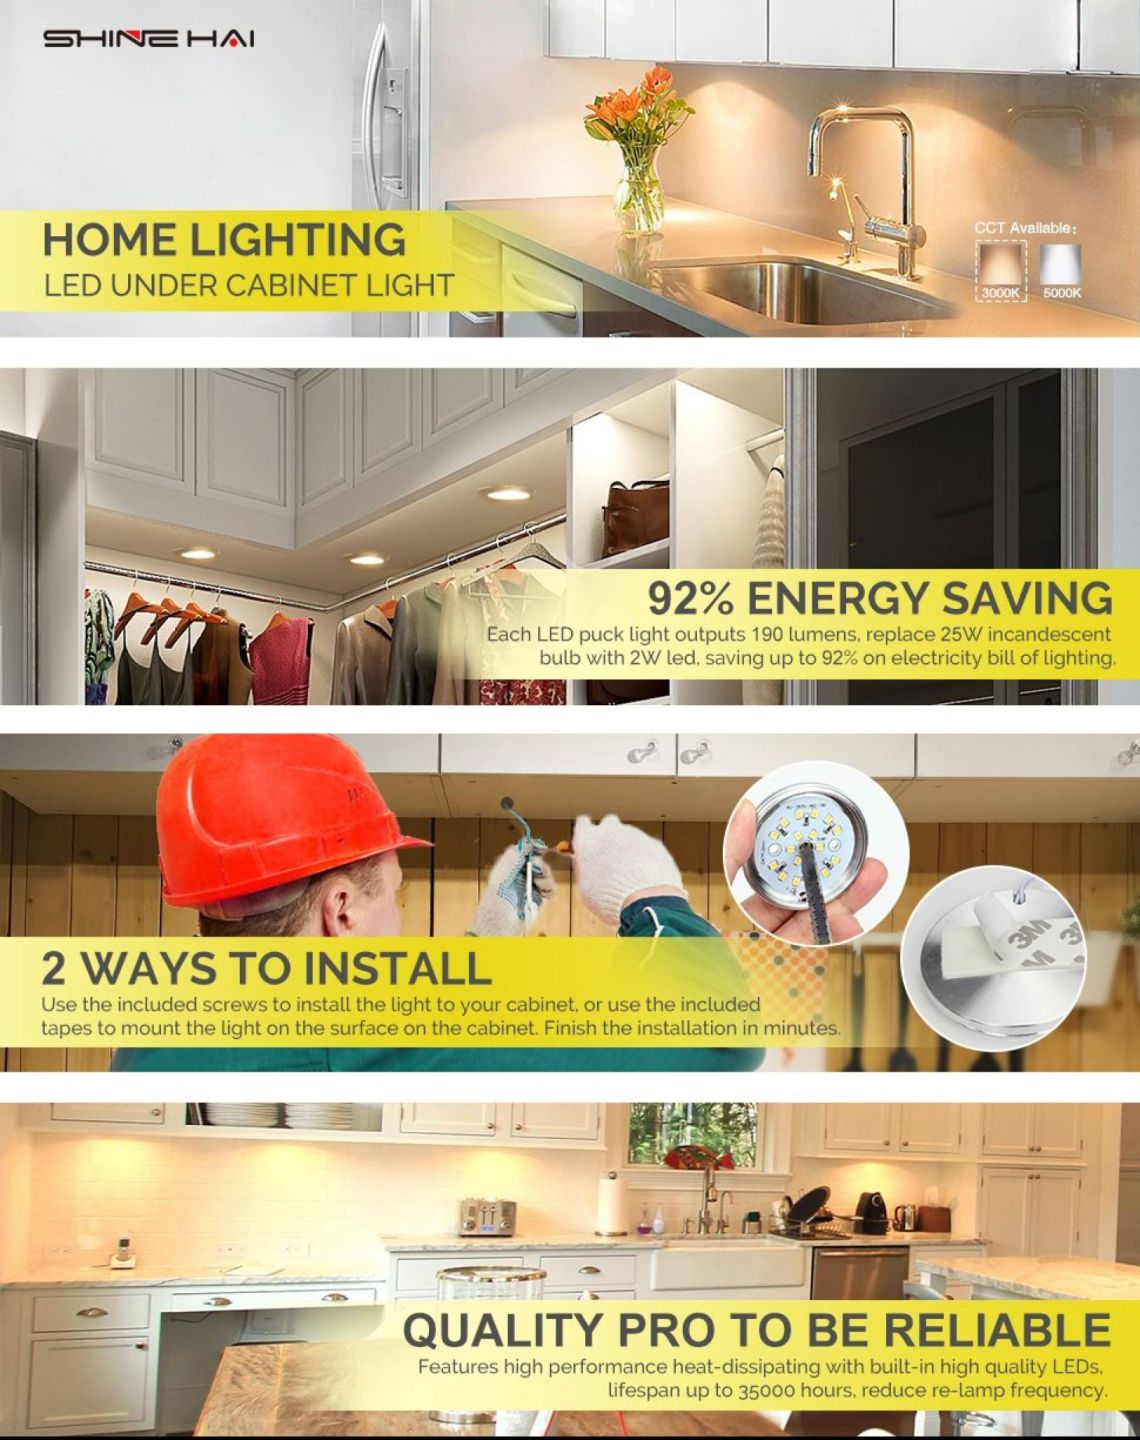 LED Under Cabinet Lighting Kit, SHINE HAI 1140 Lumens LED Puck Light, 3000K Warm White, All Accessories Included, Kitchen, Closet Lights, Set of 6 - - Amazon.com